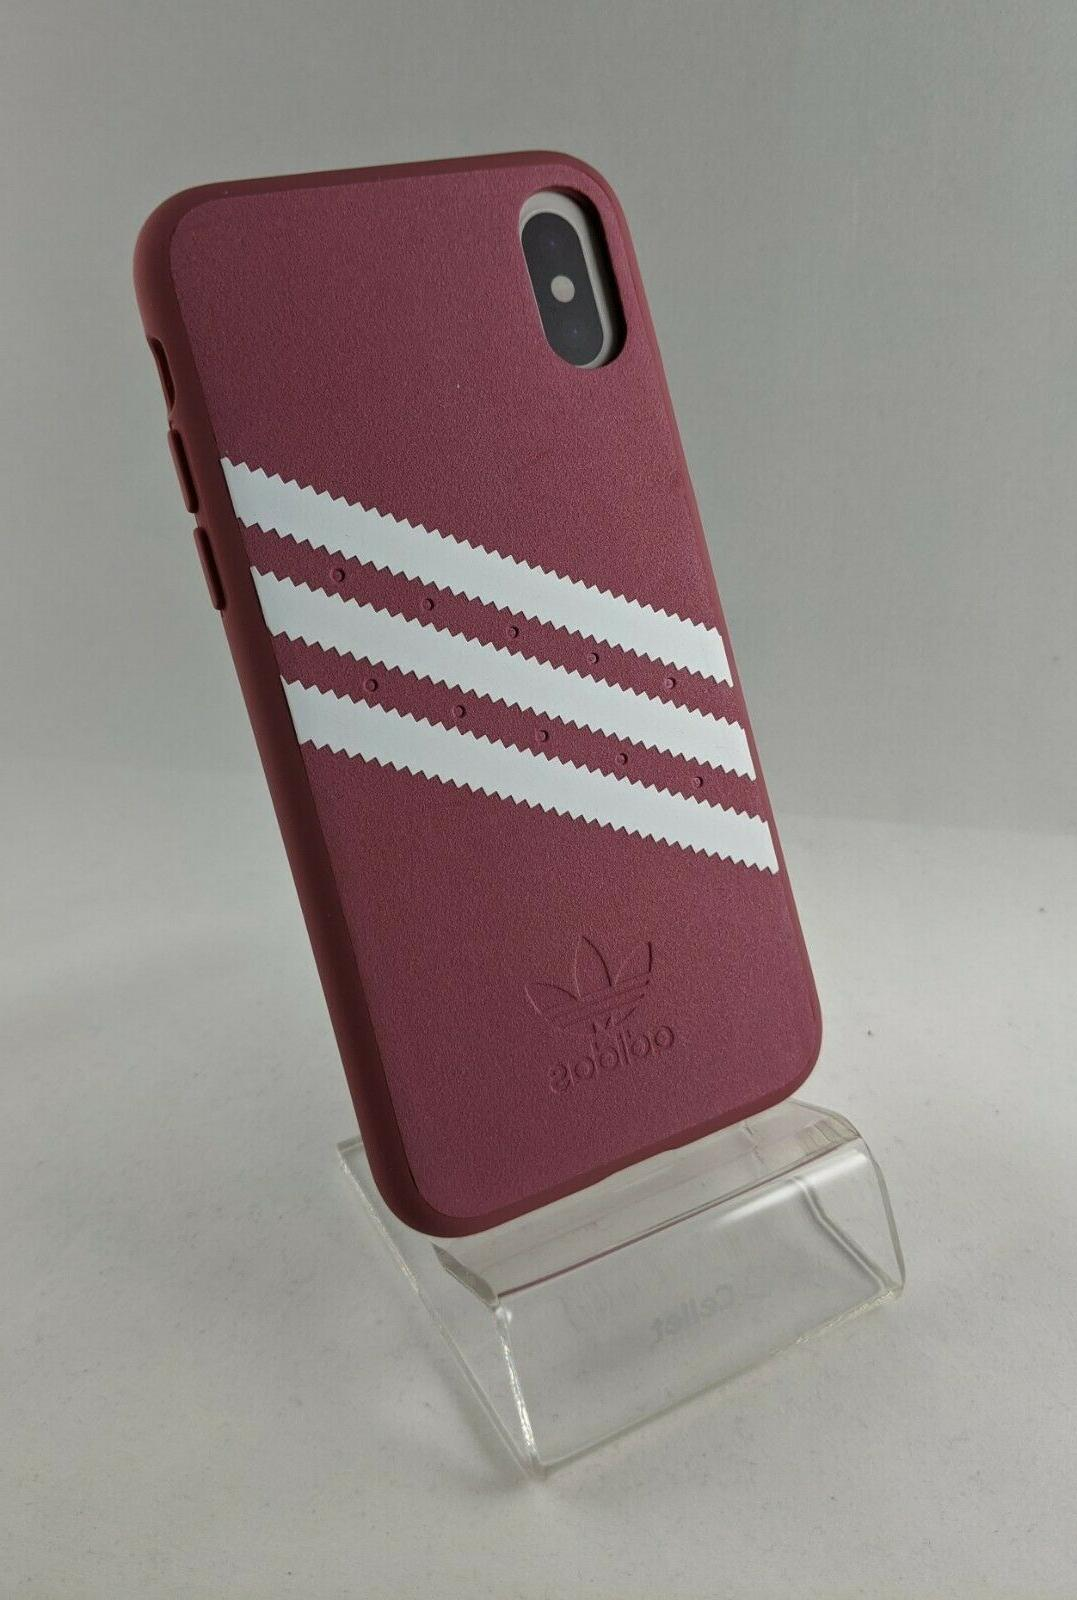 Adidas Stripes Case for iPhone X / - Black 5.8 Apple New